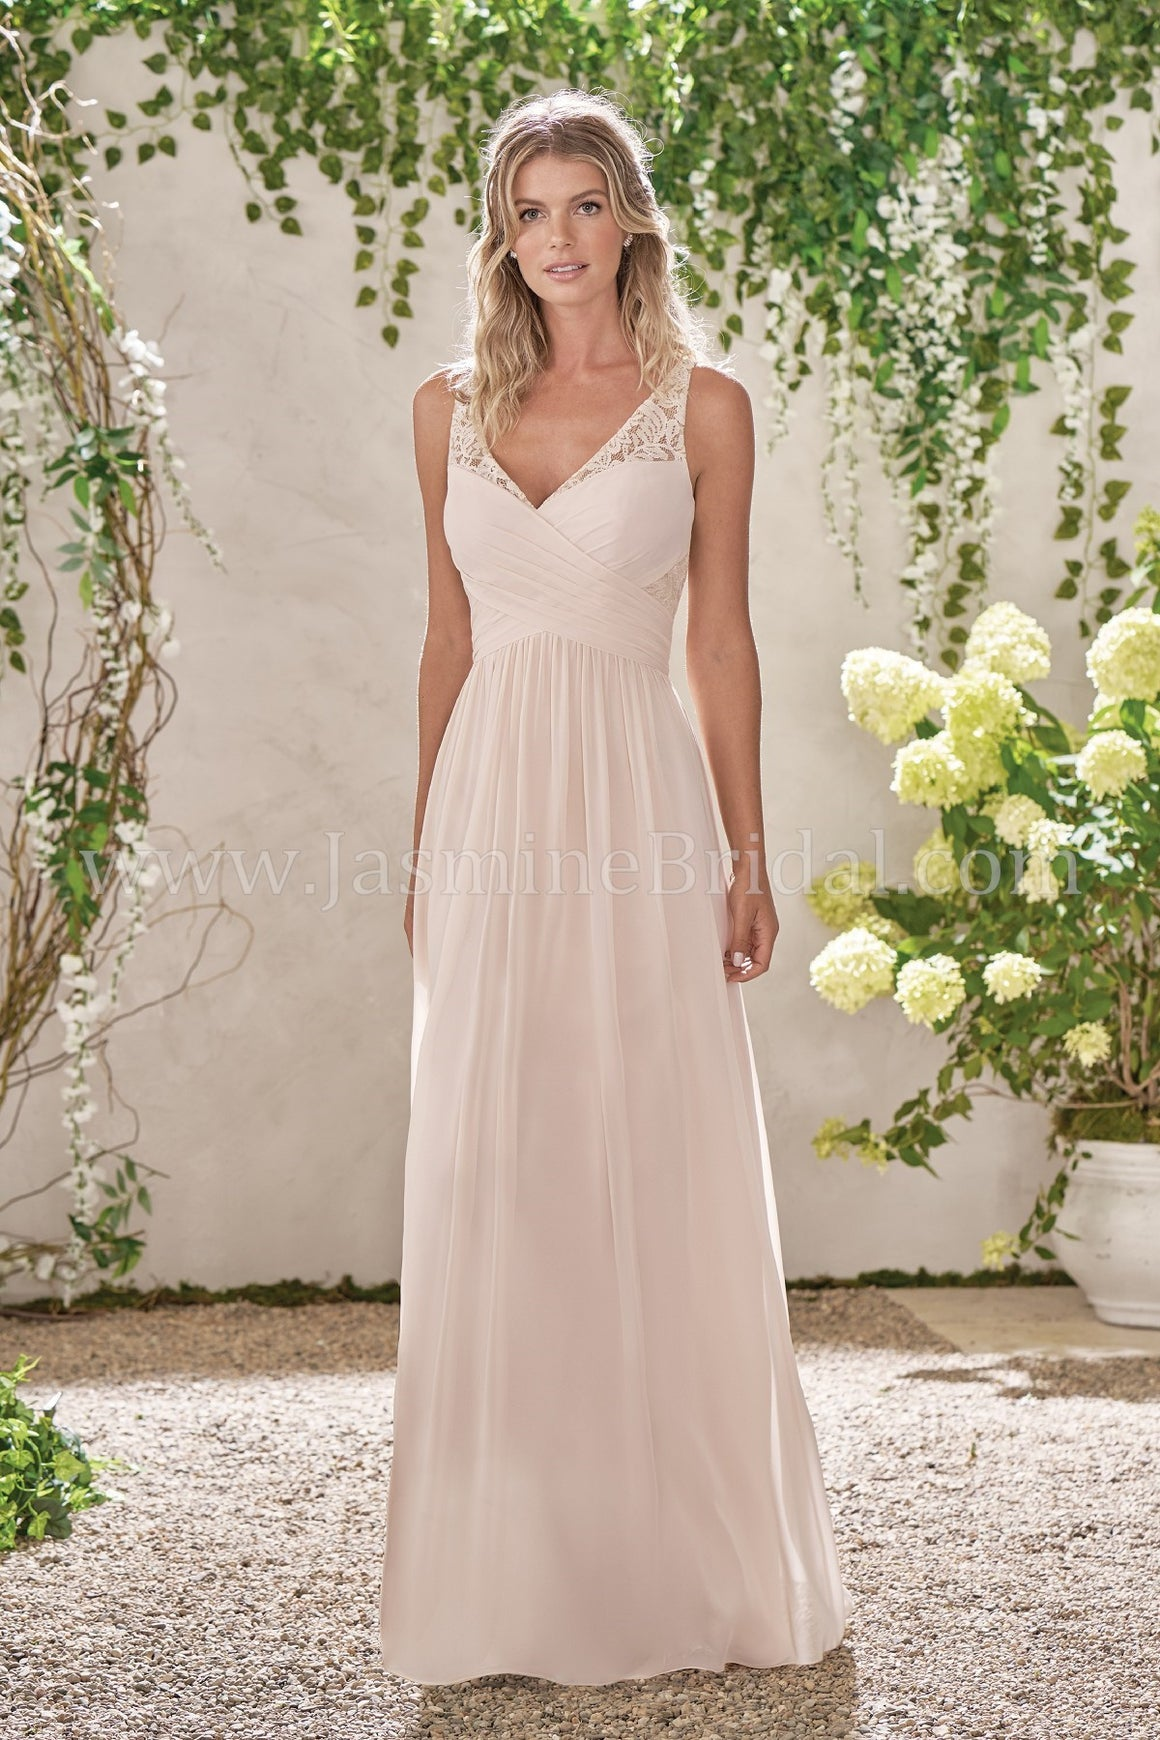 Poly Chiffon V-Neck Dress with Lace and Rouching - Available Long or Short - Several Colors - Sizes 00-34 - In Store ONLY